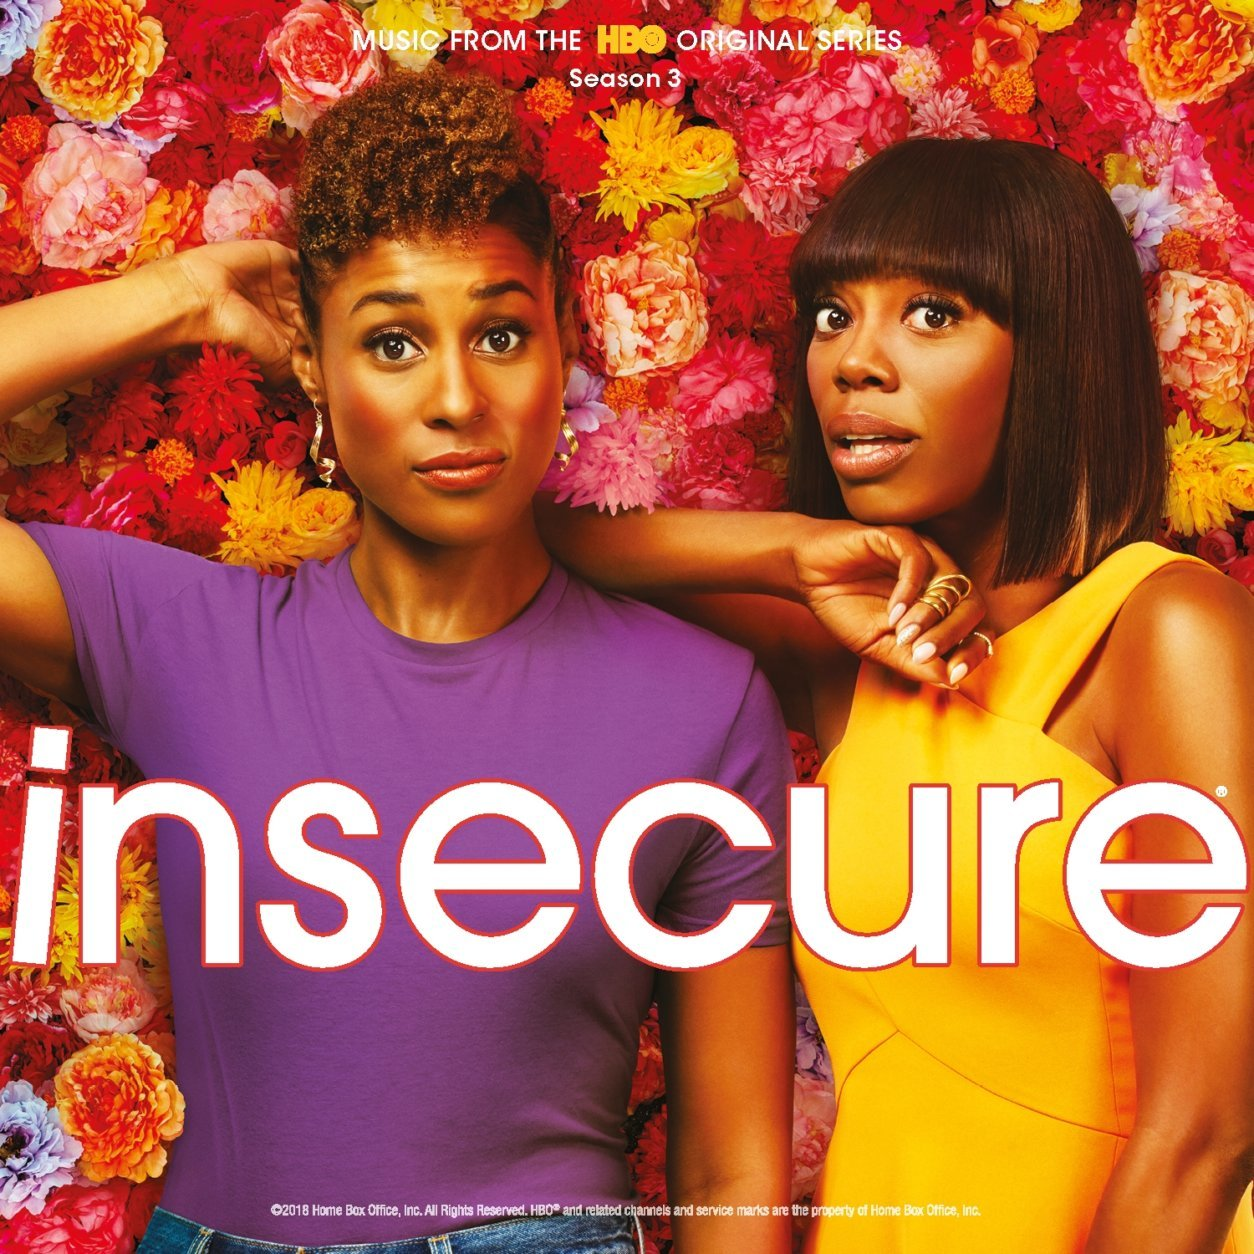 """This cover image released by RCA shows """"Insecure: Music from the HBO Original Series, Season 3,"""" by various artists, which is named one of the top ten albums of the year.  (RCA via AP)"""